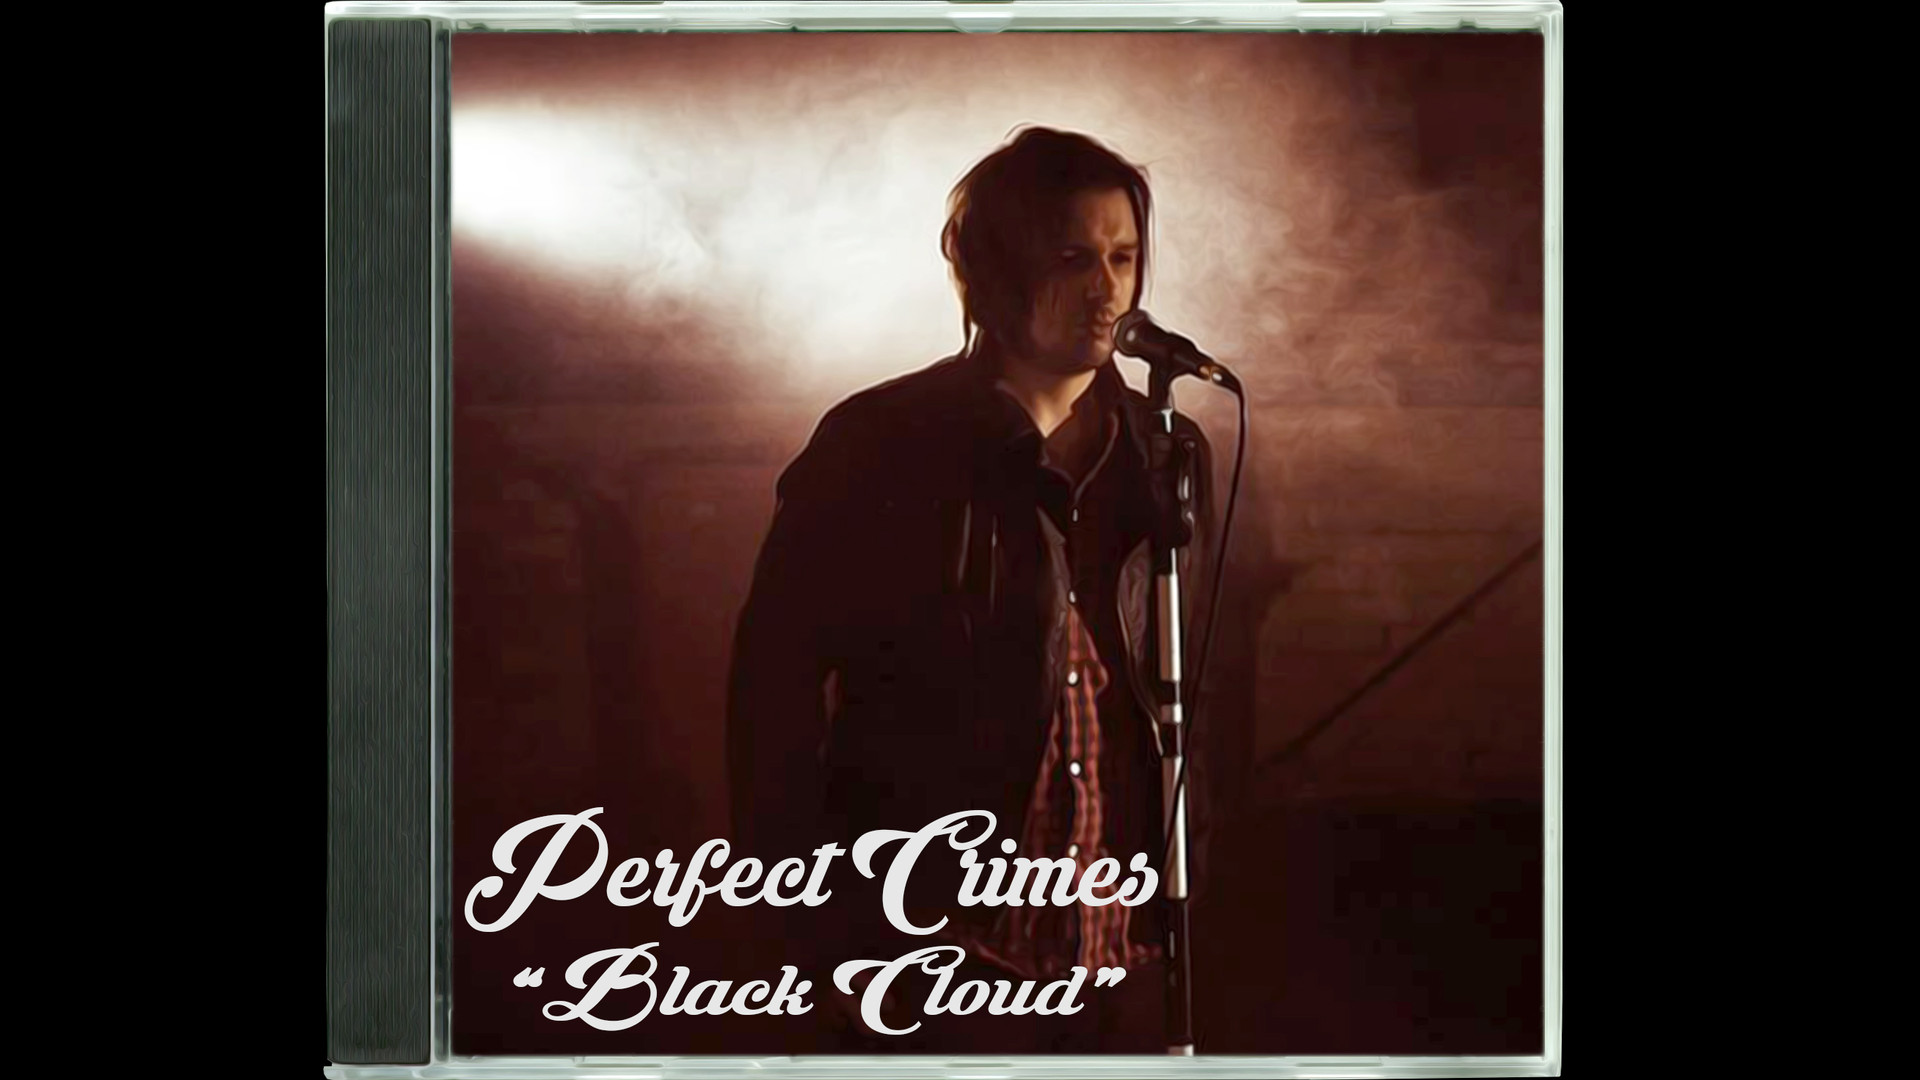 "Perfect Crimes ""Black Cloud"""